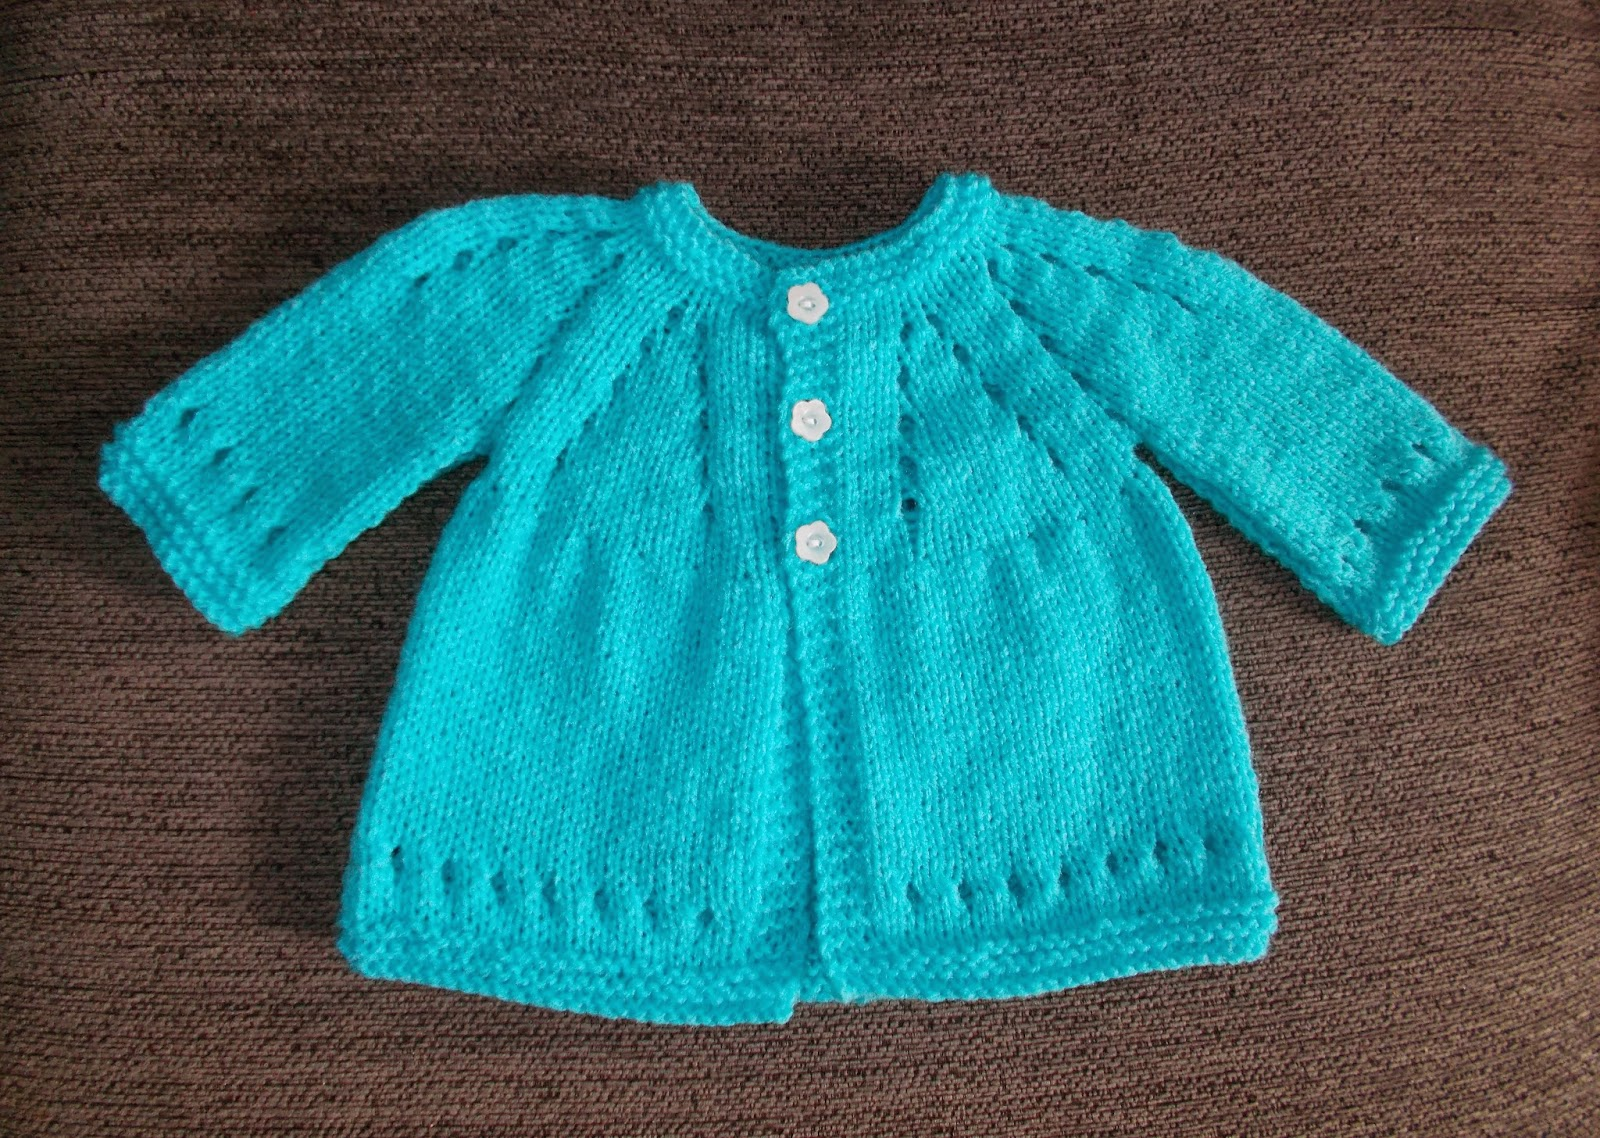 Top Down Knitting Patterns For Children Free : mariannas lazy daisy days: Mariannas Famous Top-Down ~ with Sleeves